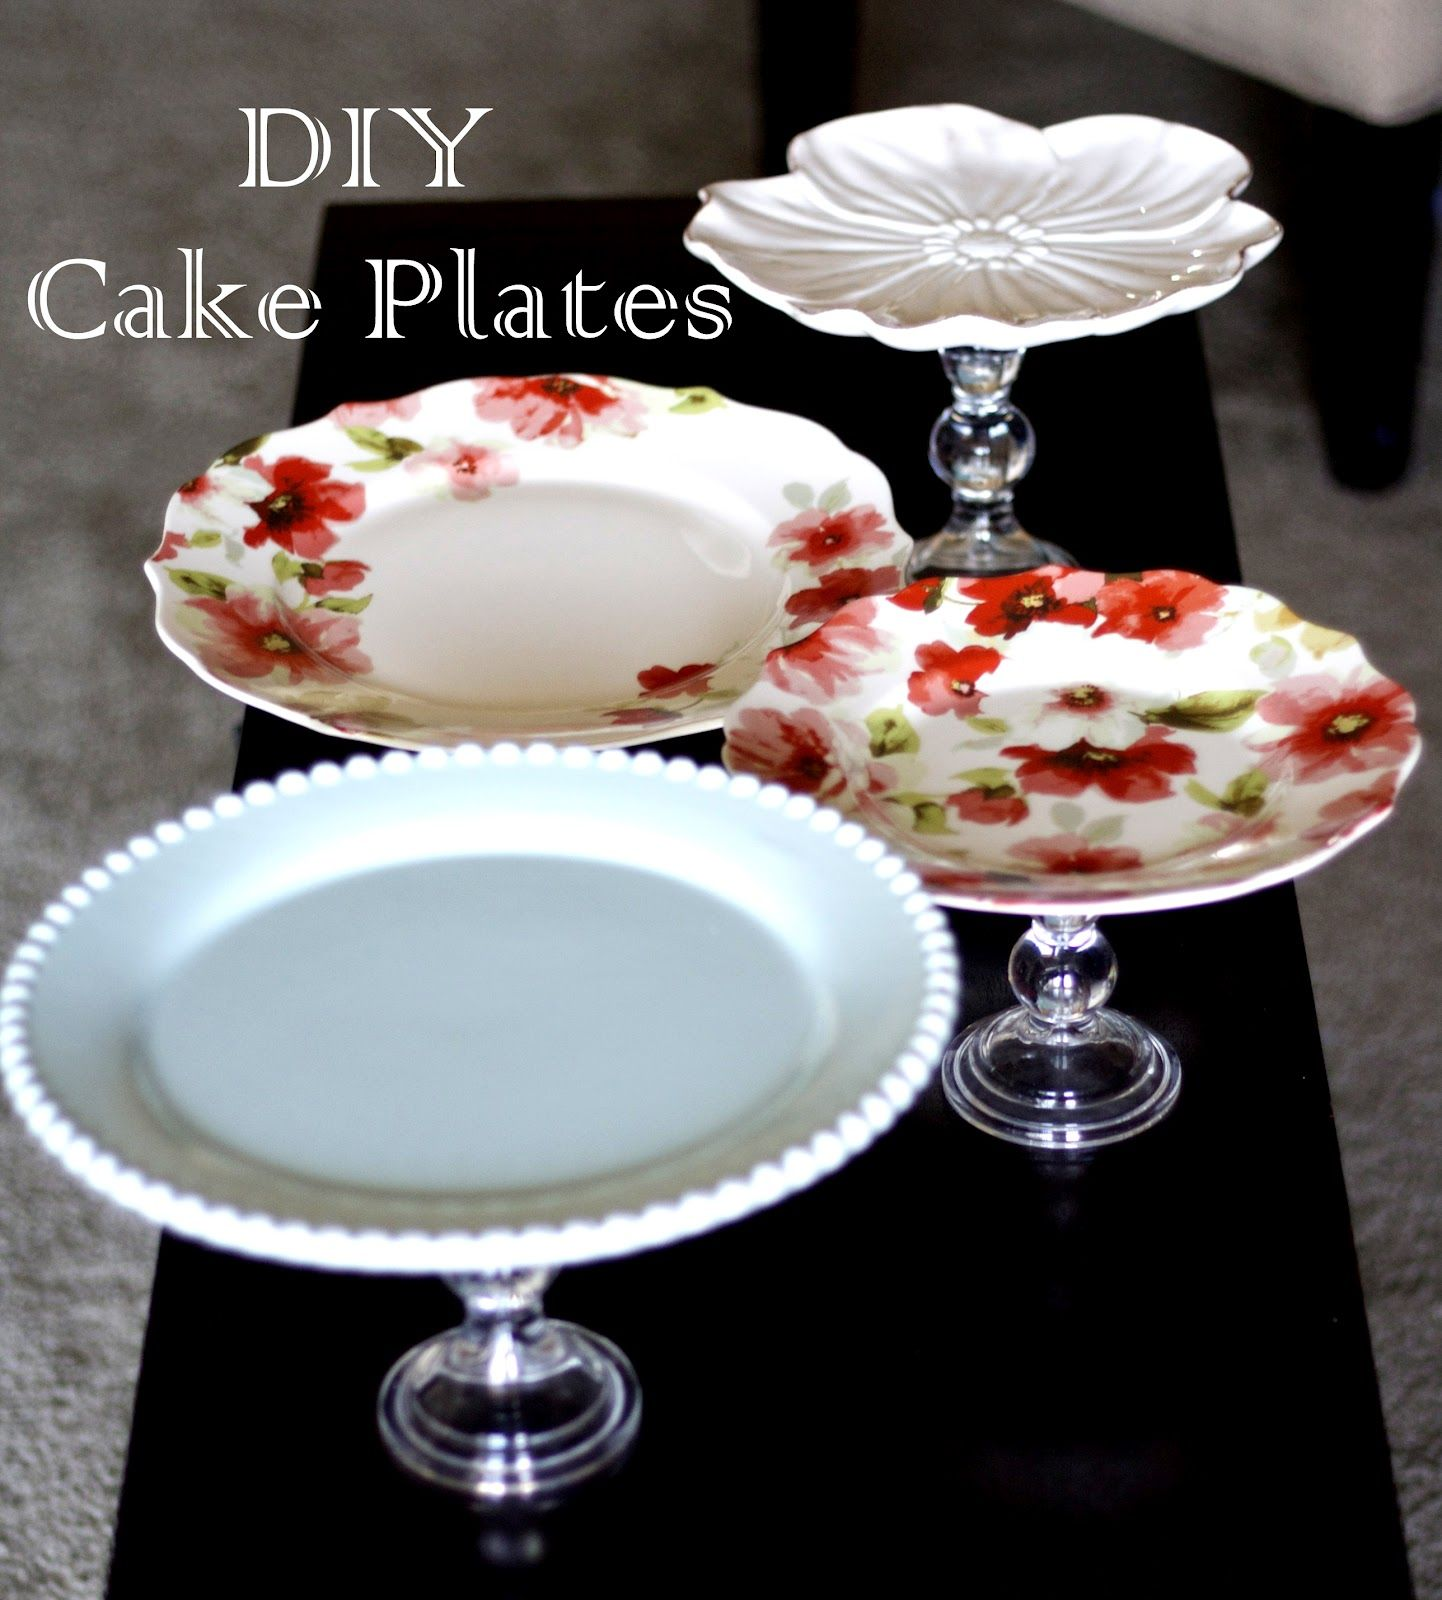 Diy Cake Plate S Use Dollar Candlestick Holders And Found Plates Goodwill